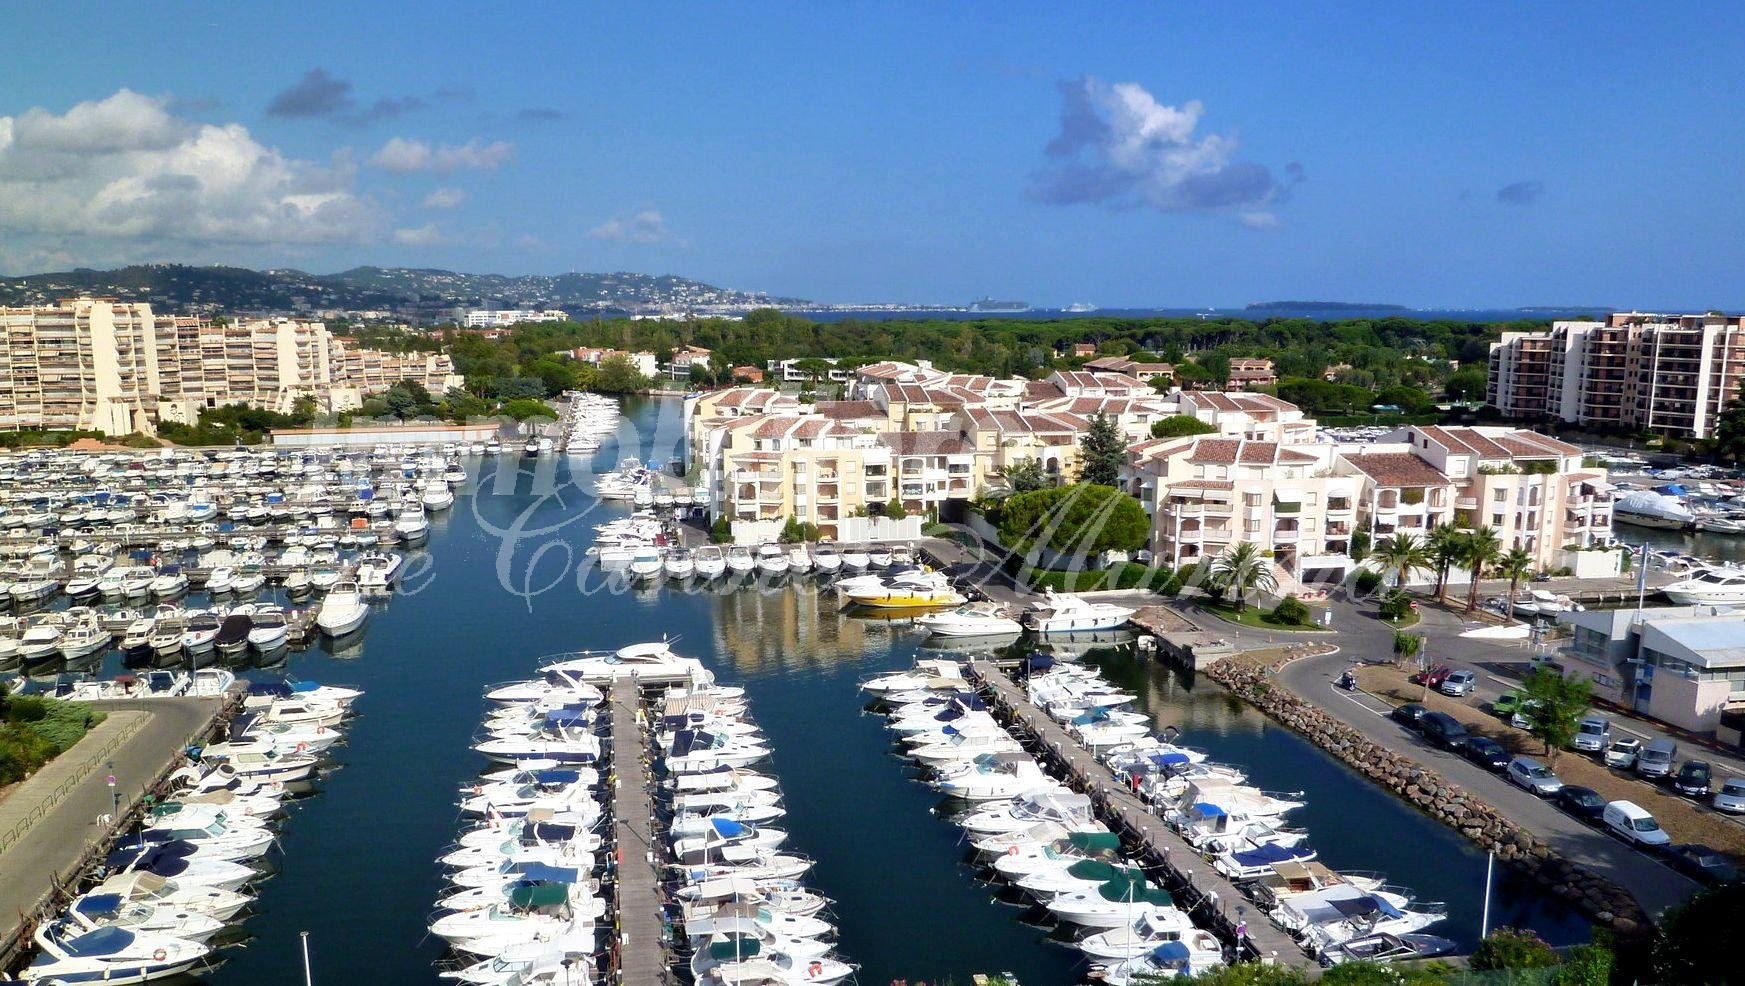 Mooring place in the harbour of Cannes Marina